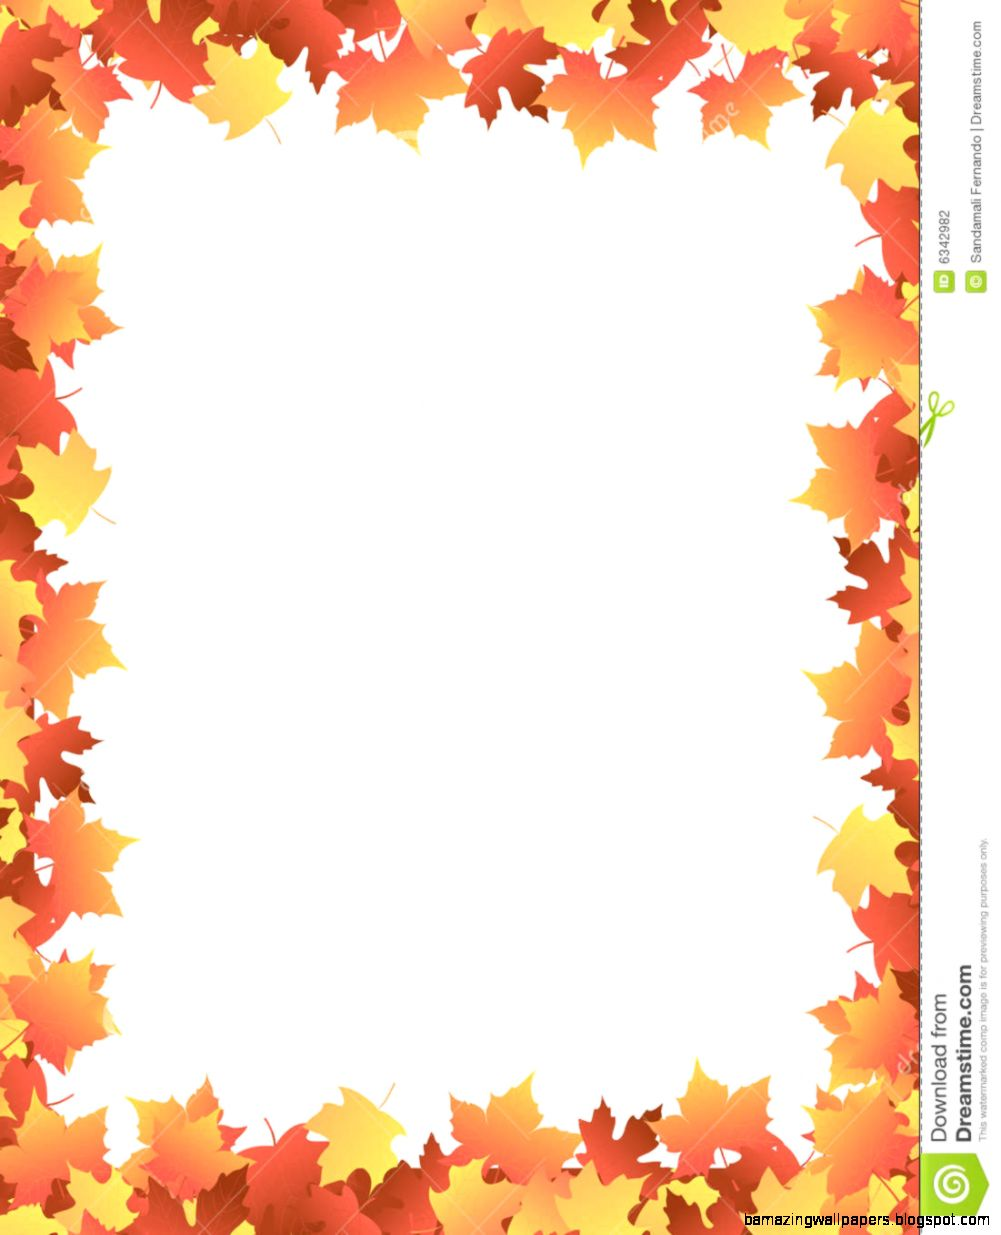 8 Best Images of Free Printable Fall Leaf Borders   Free Printable